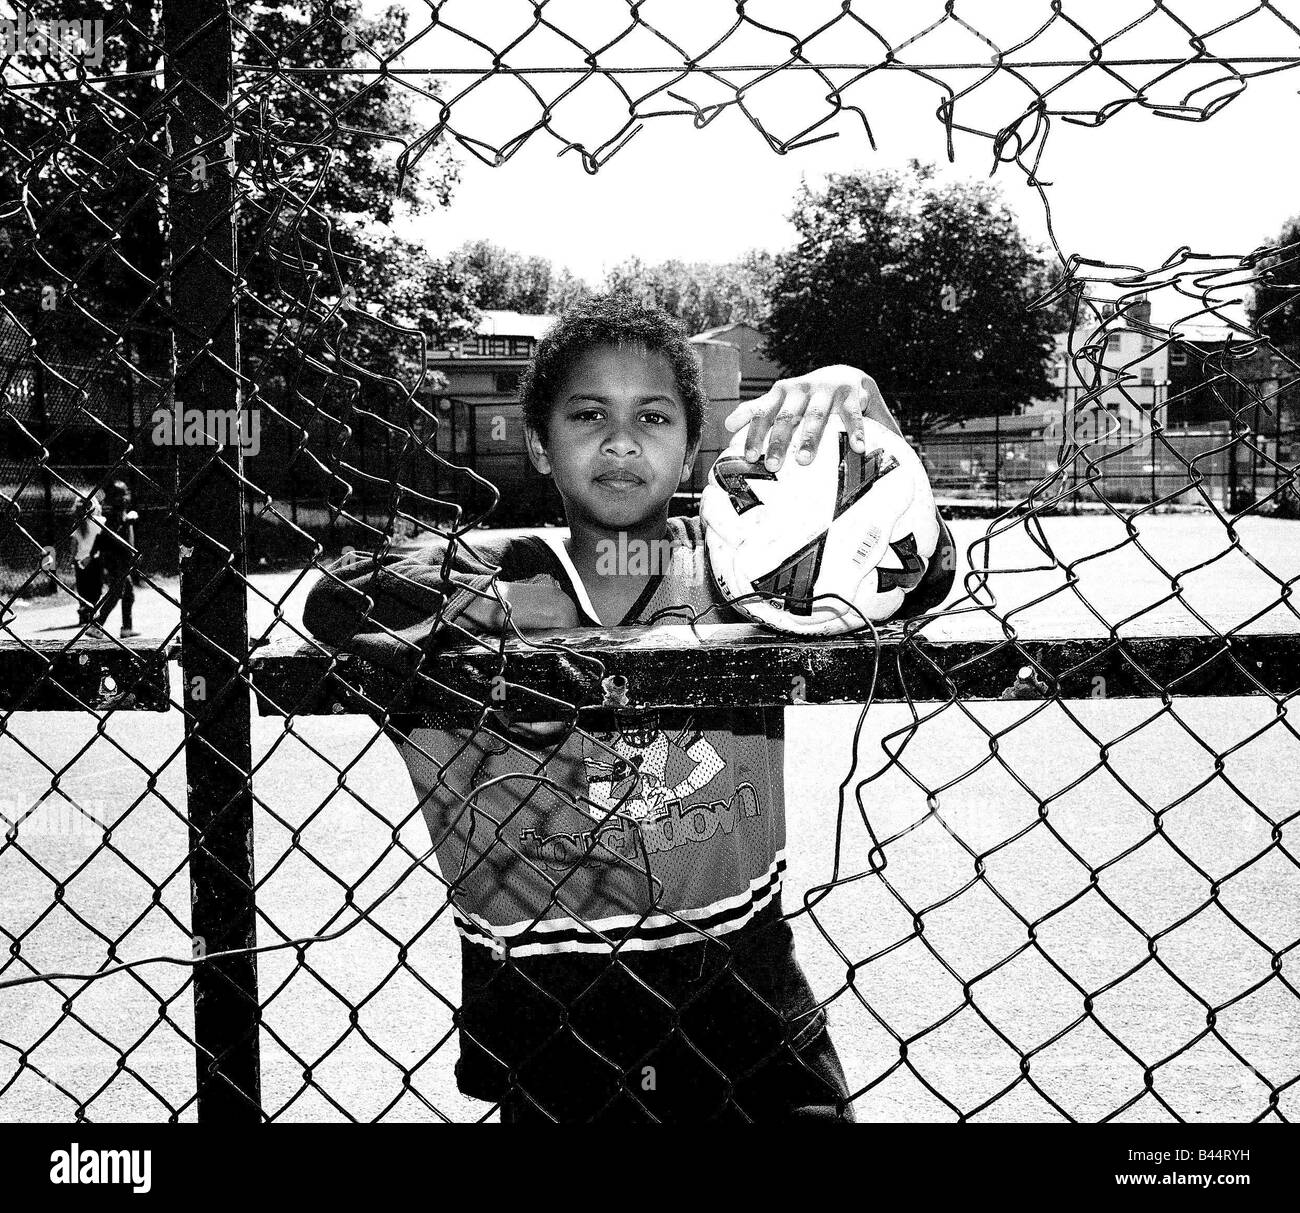 PERMISSION MUST BE OBTAINED FROM MIRRORPIX BEFORE USE Inner City Housing Estate Hackney London June 2002 Children - Stock Image